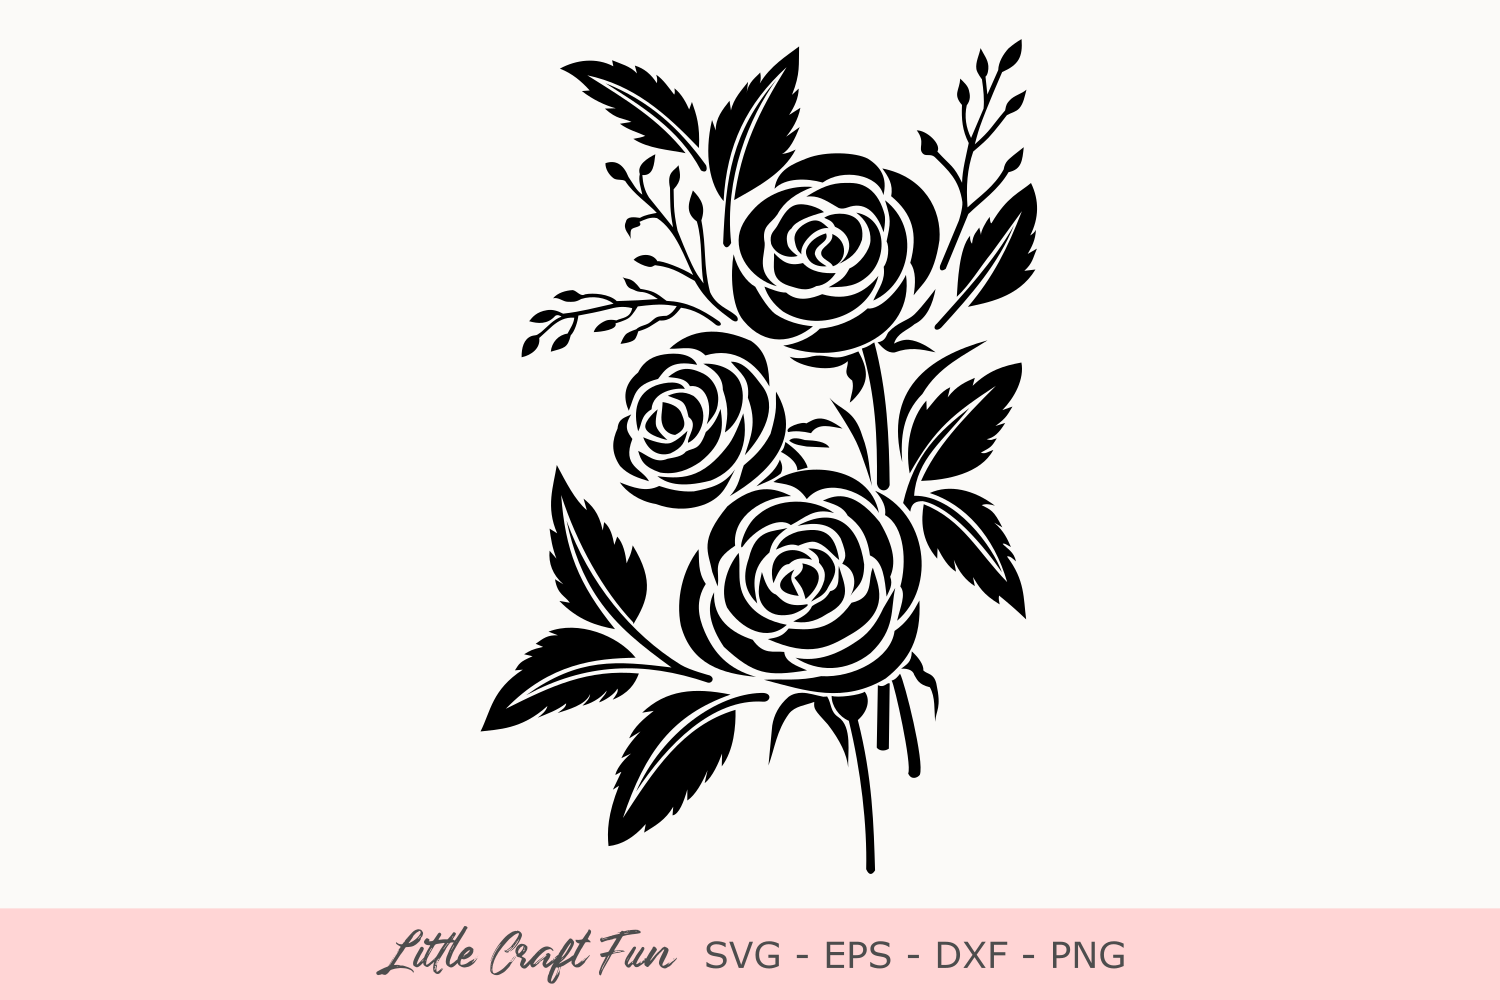 Download Free Rose Flowers Silhouette Svg Graphic By Little Craft Fun SVG Cut Files